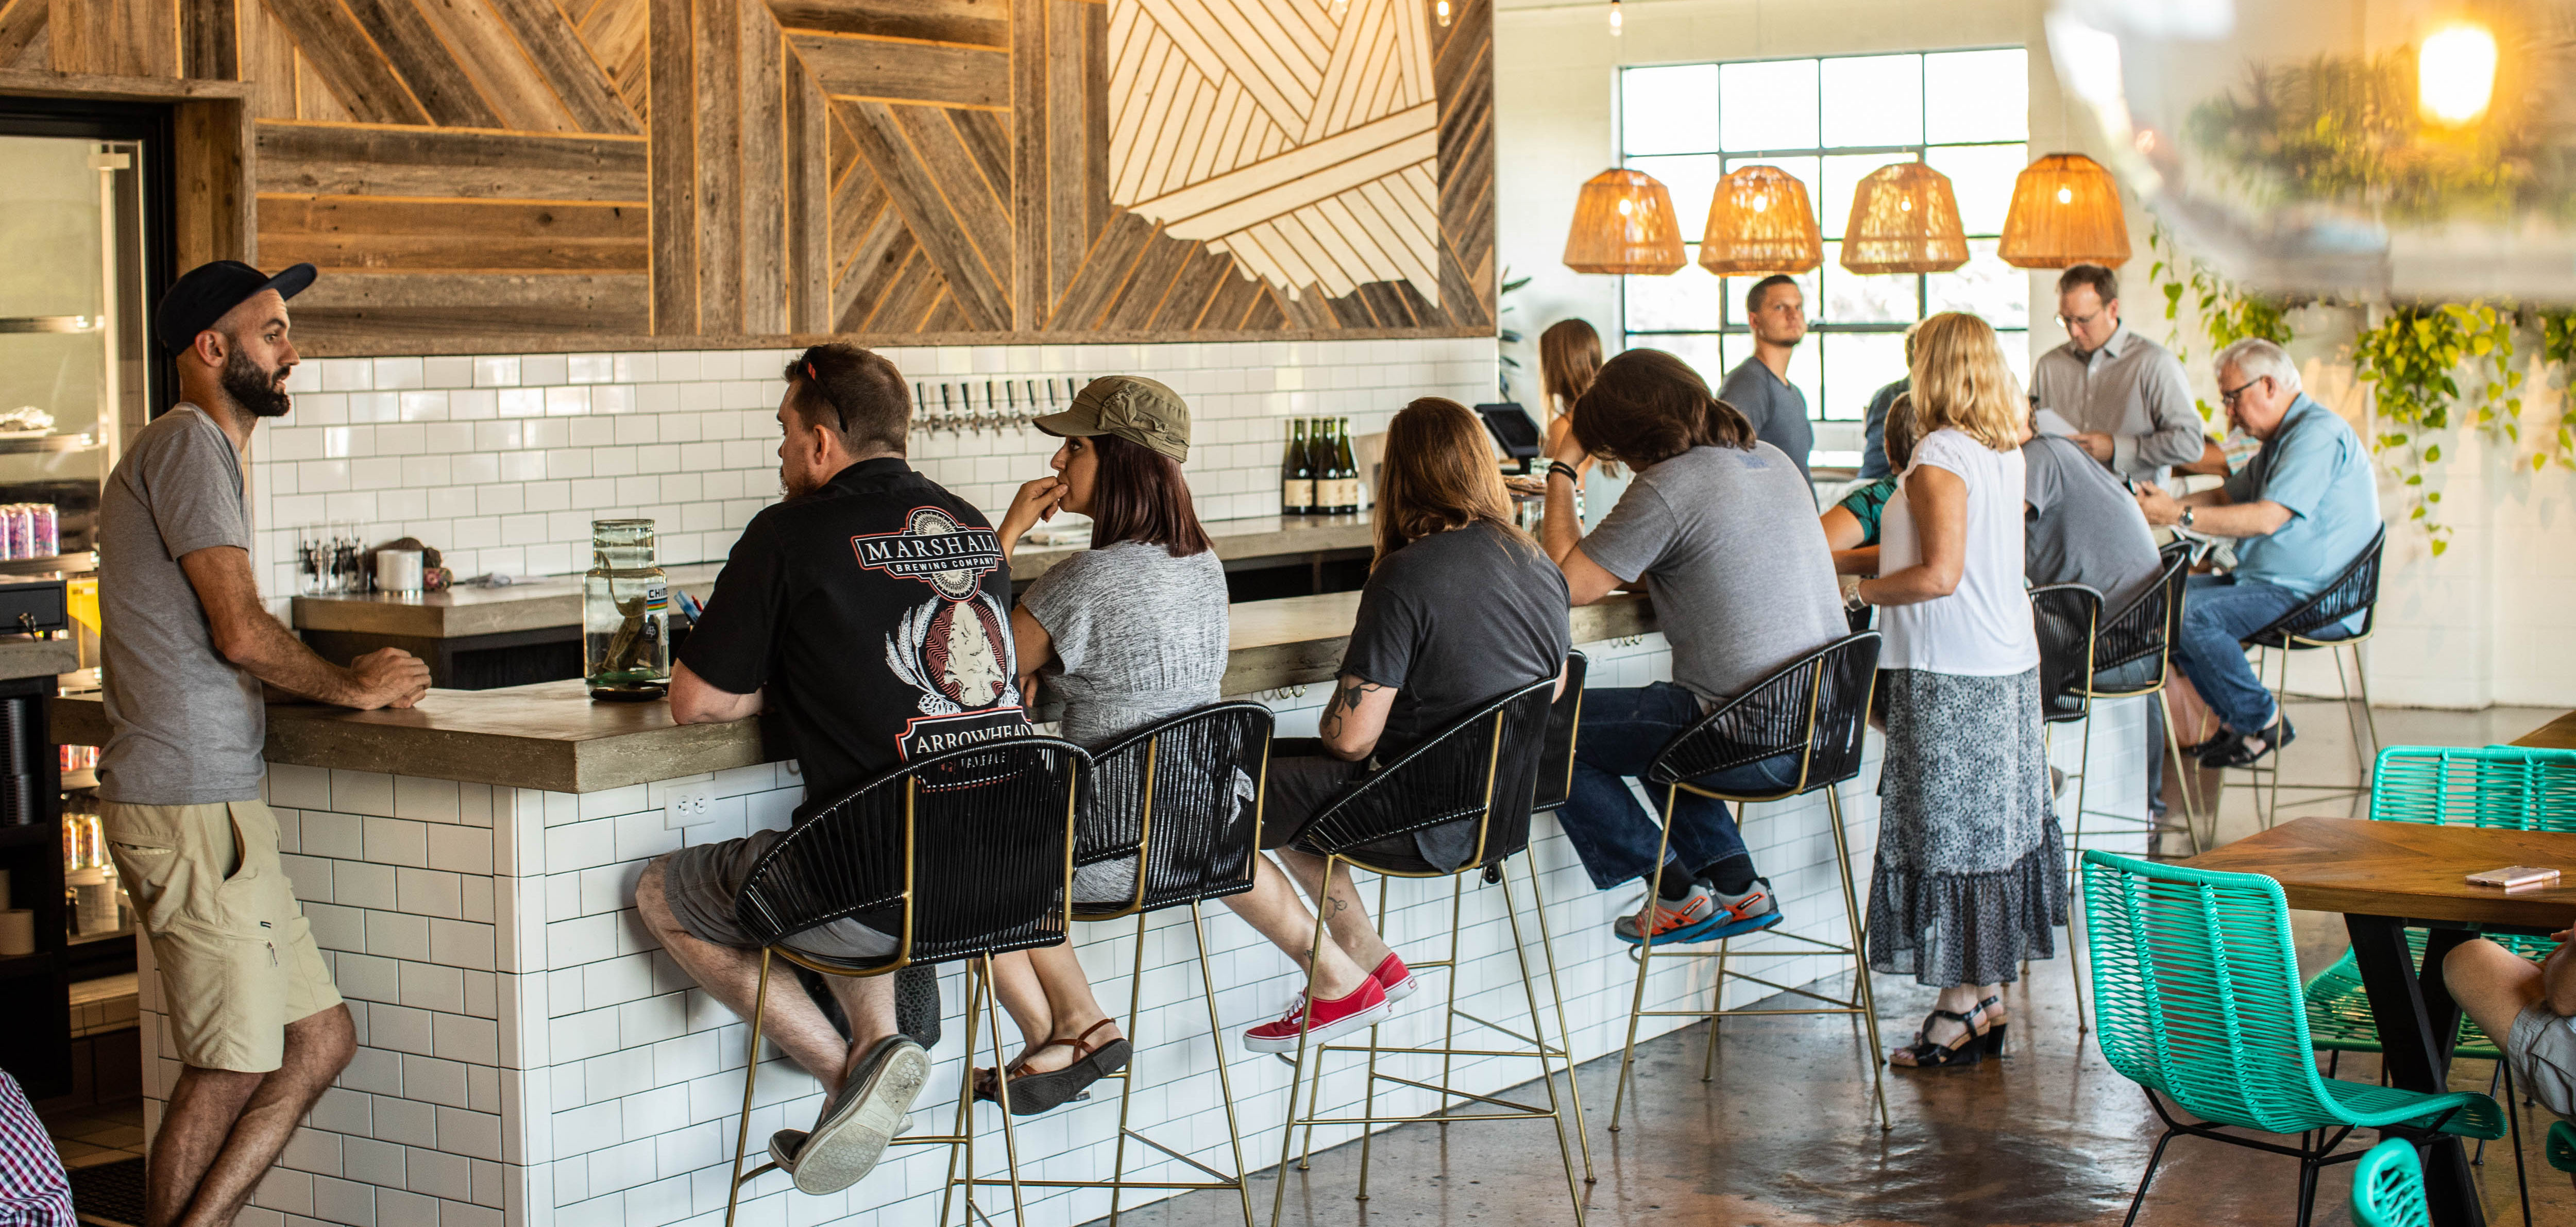 The interior of Heirloom Rustic Ales Tulsa's Kendall Whittier district.